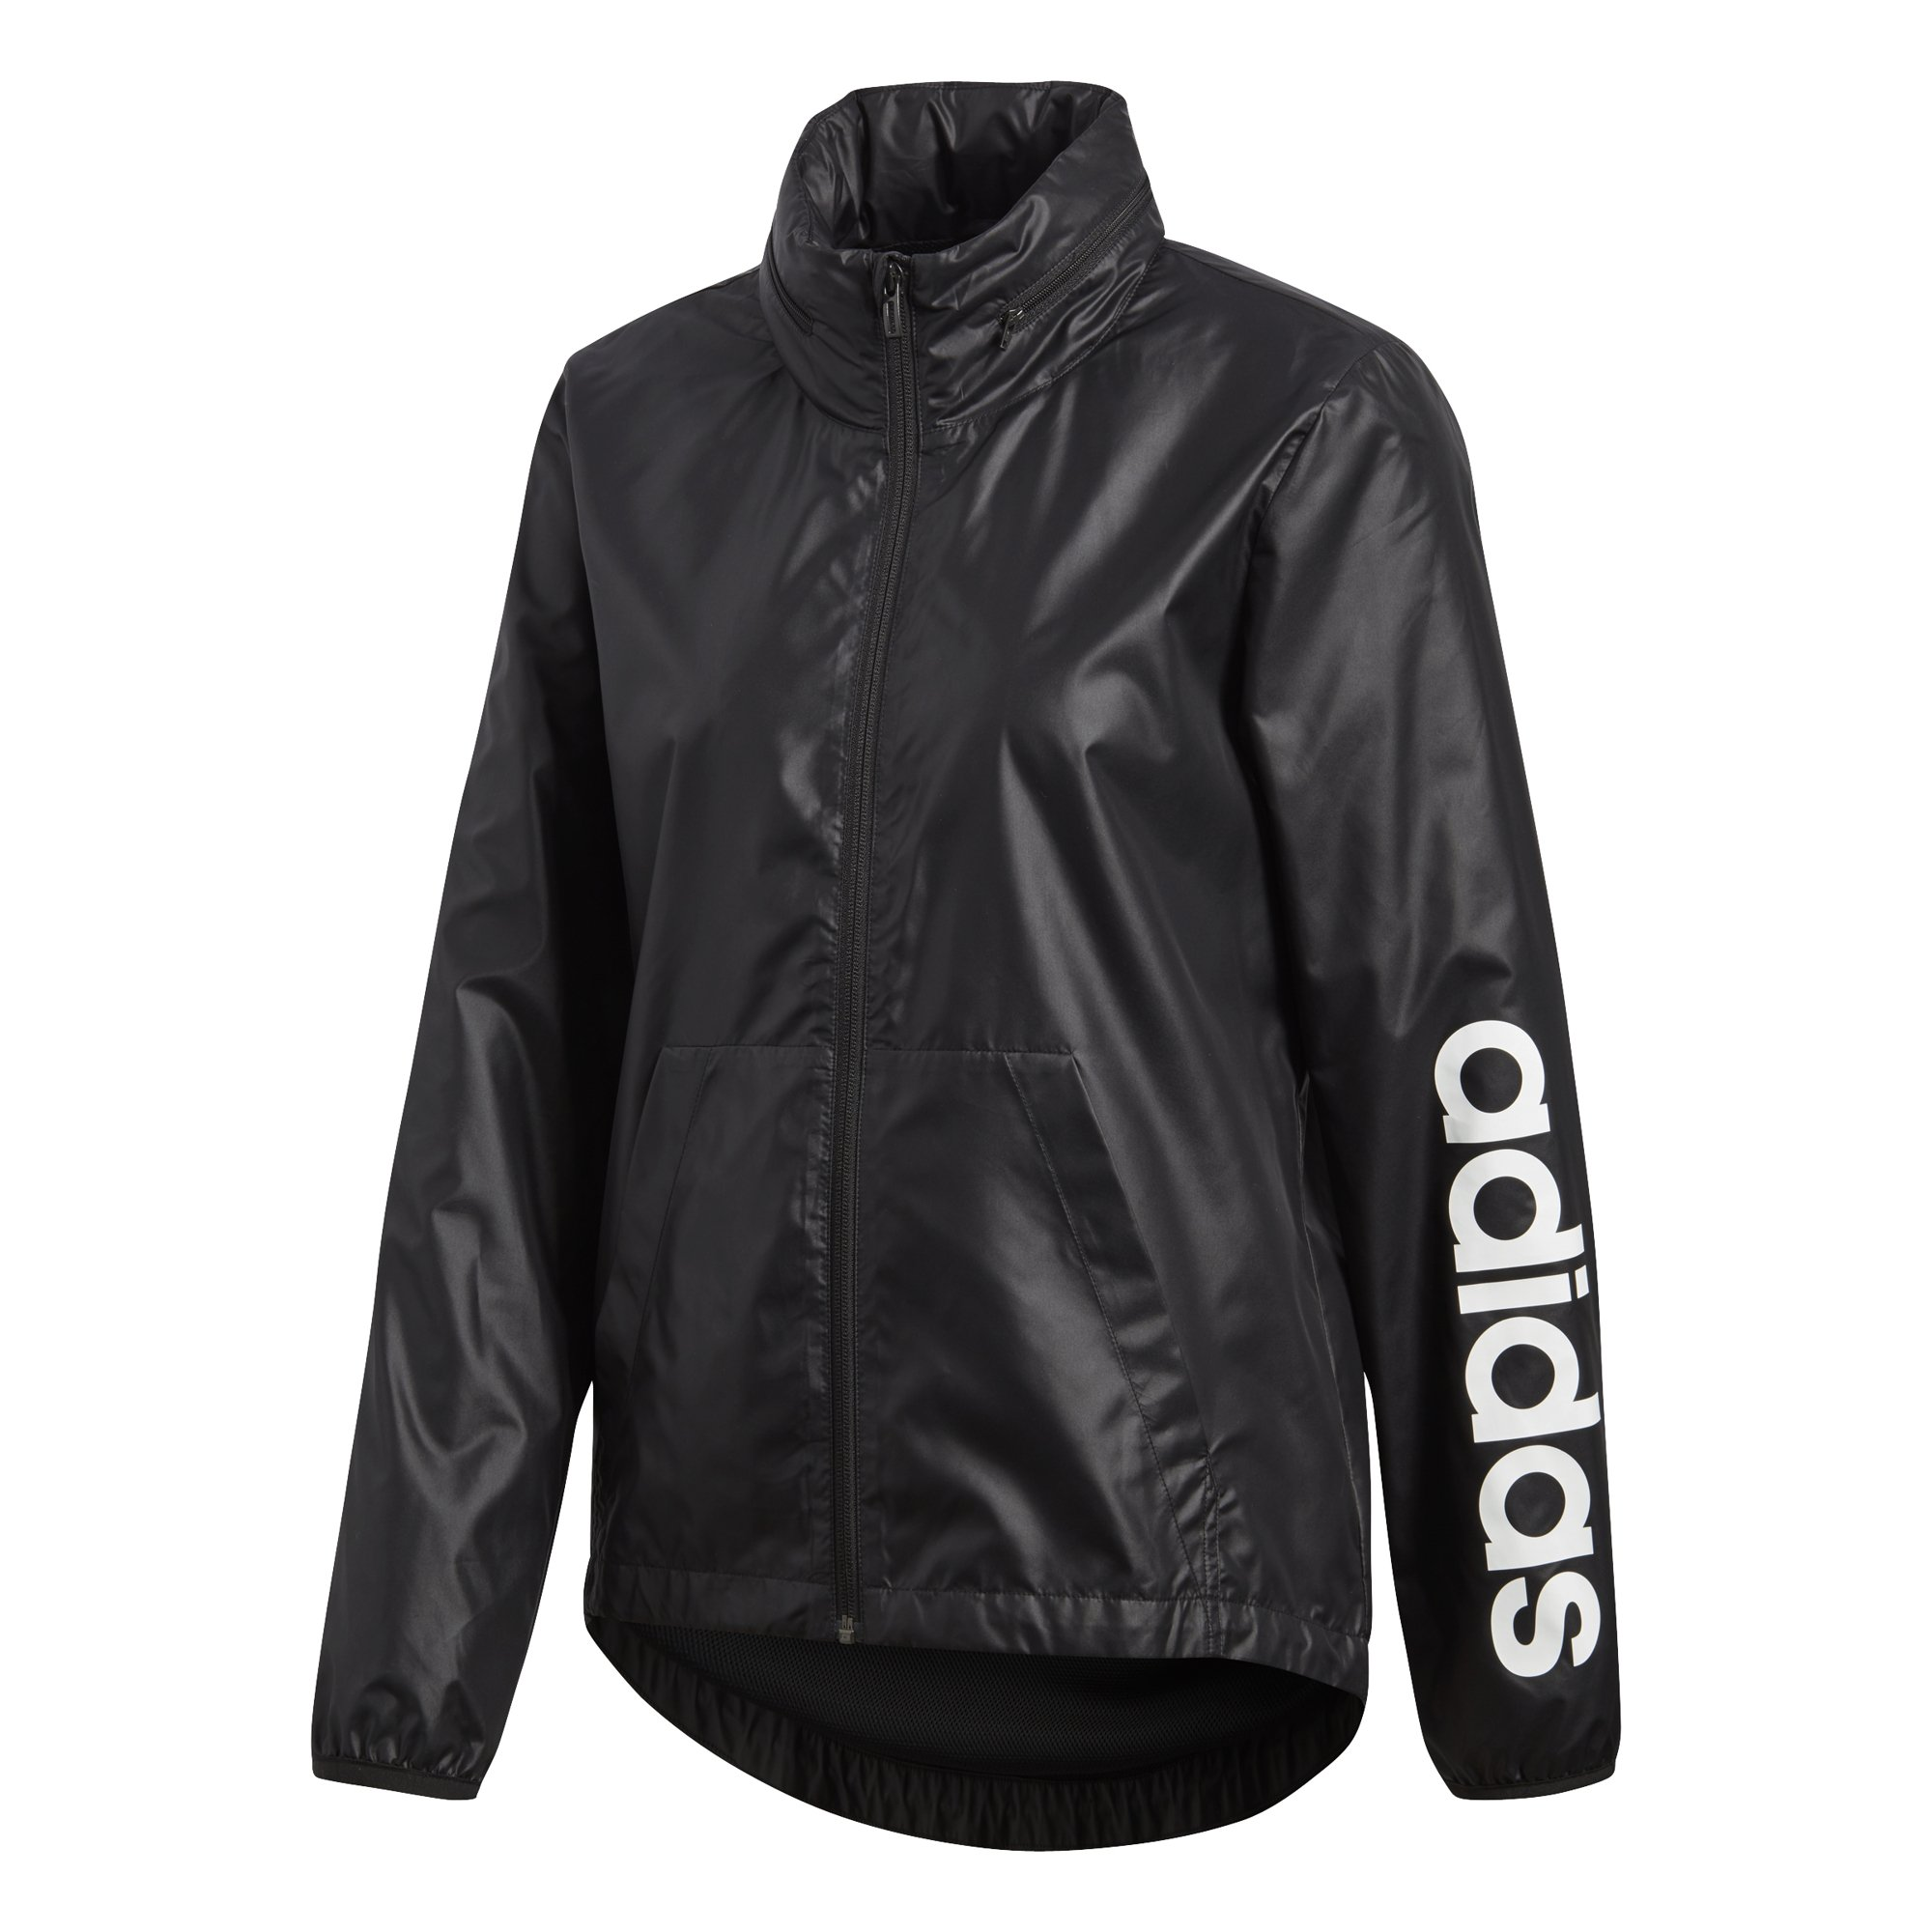 adidas Women's Linear Windbreaker Jacket, Black, X-Small